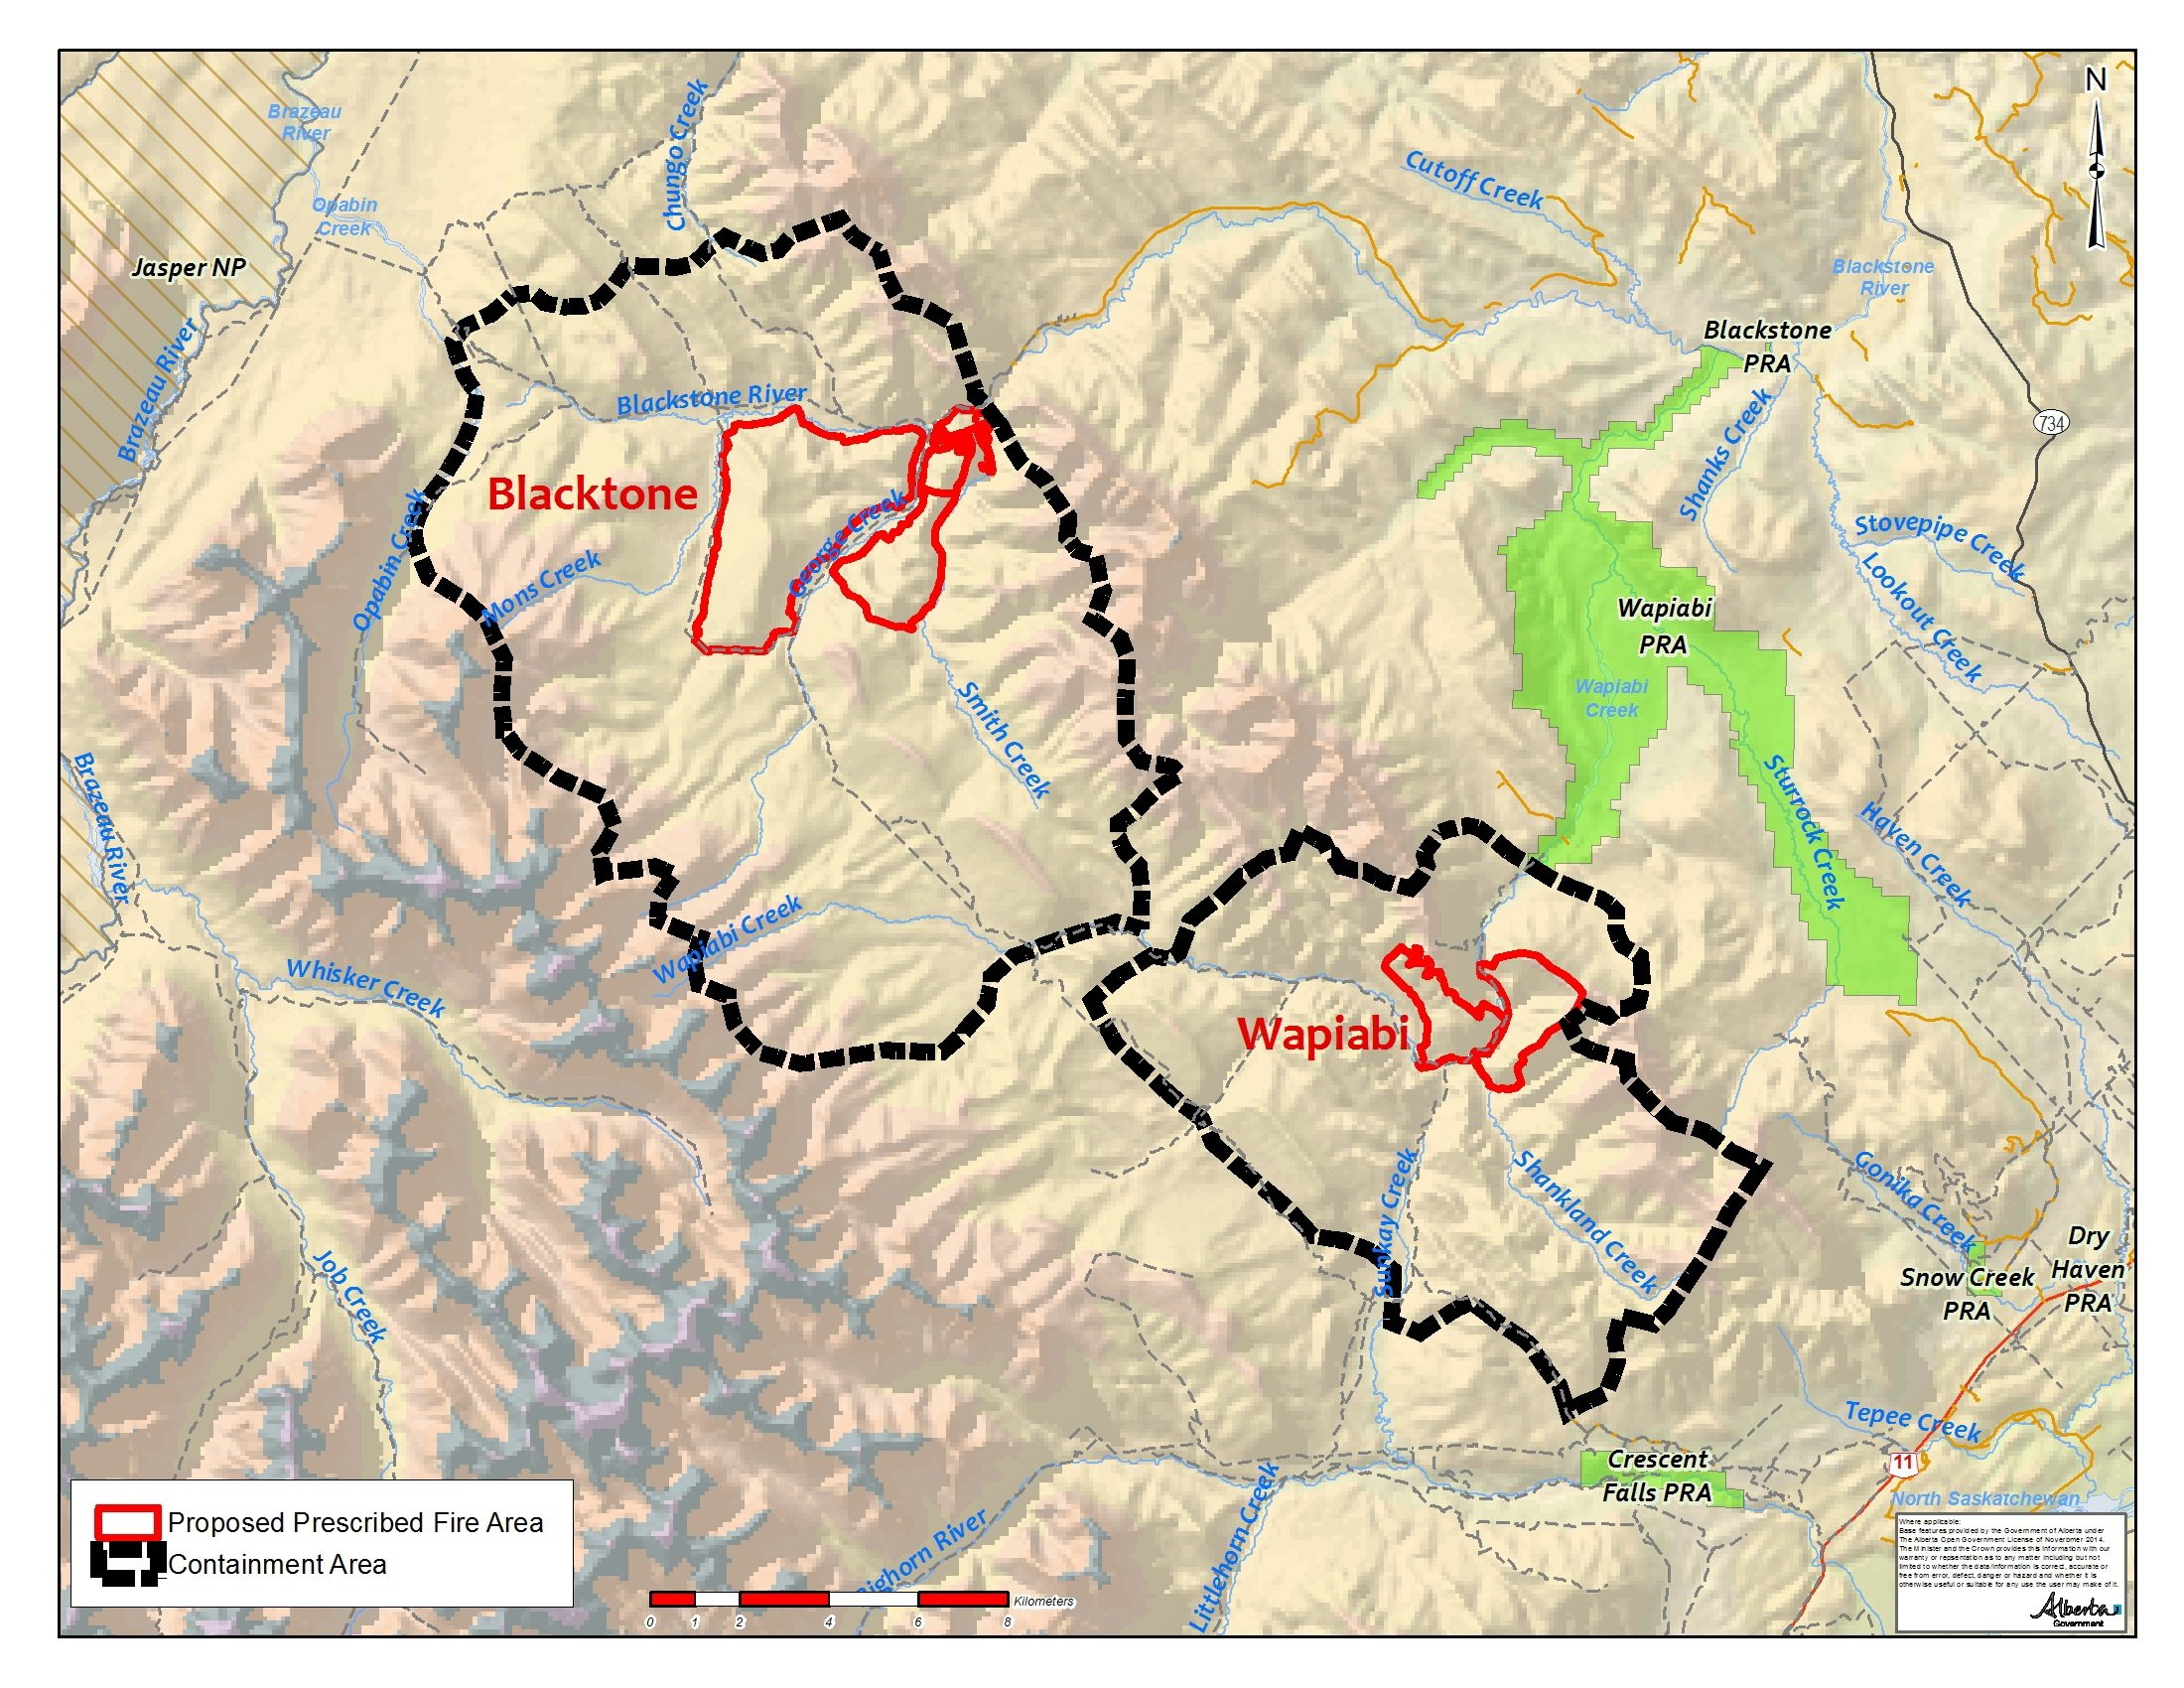 Blackstone_WapiabiPB_WebMap May17.jpg